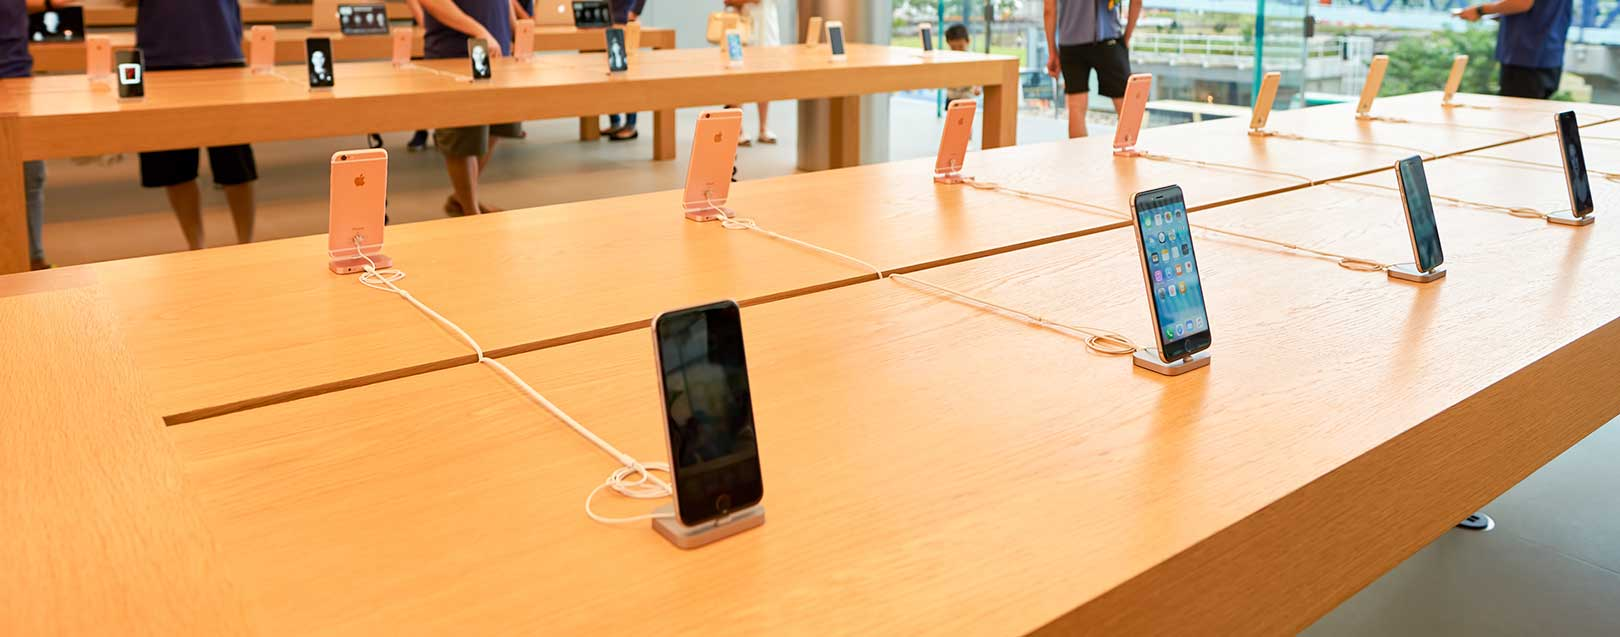 Apple selling iPhones manufactured in India on trial basis